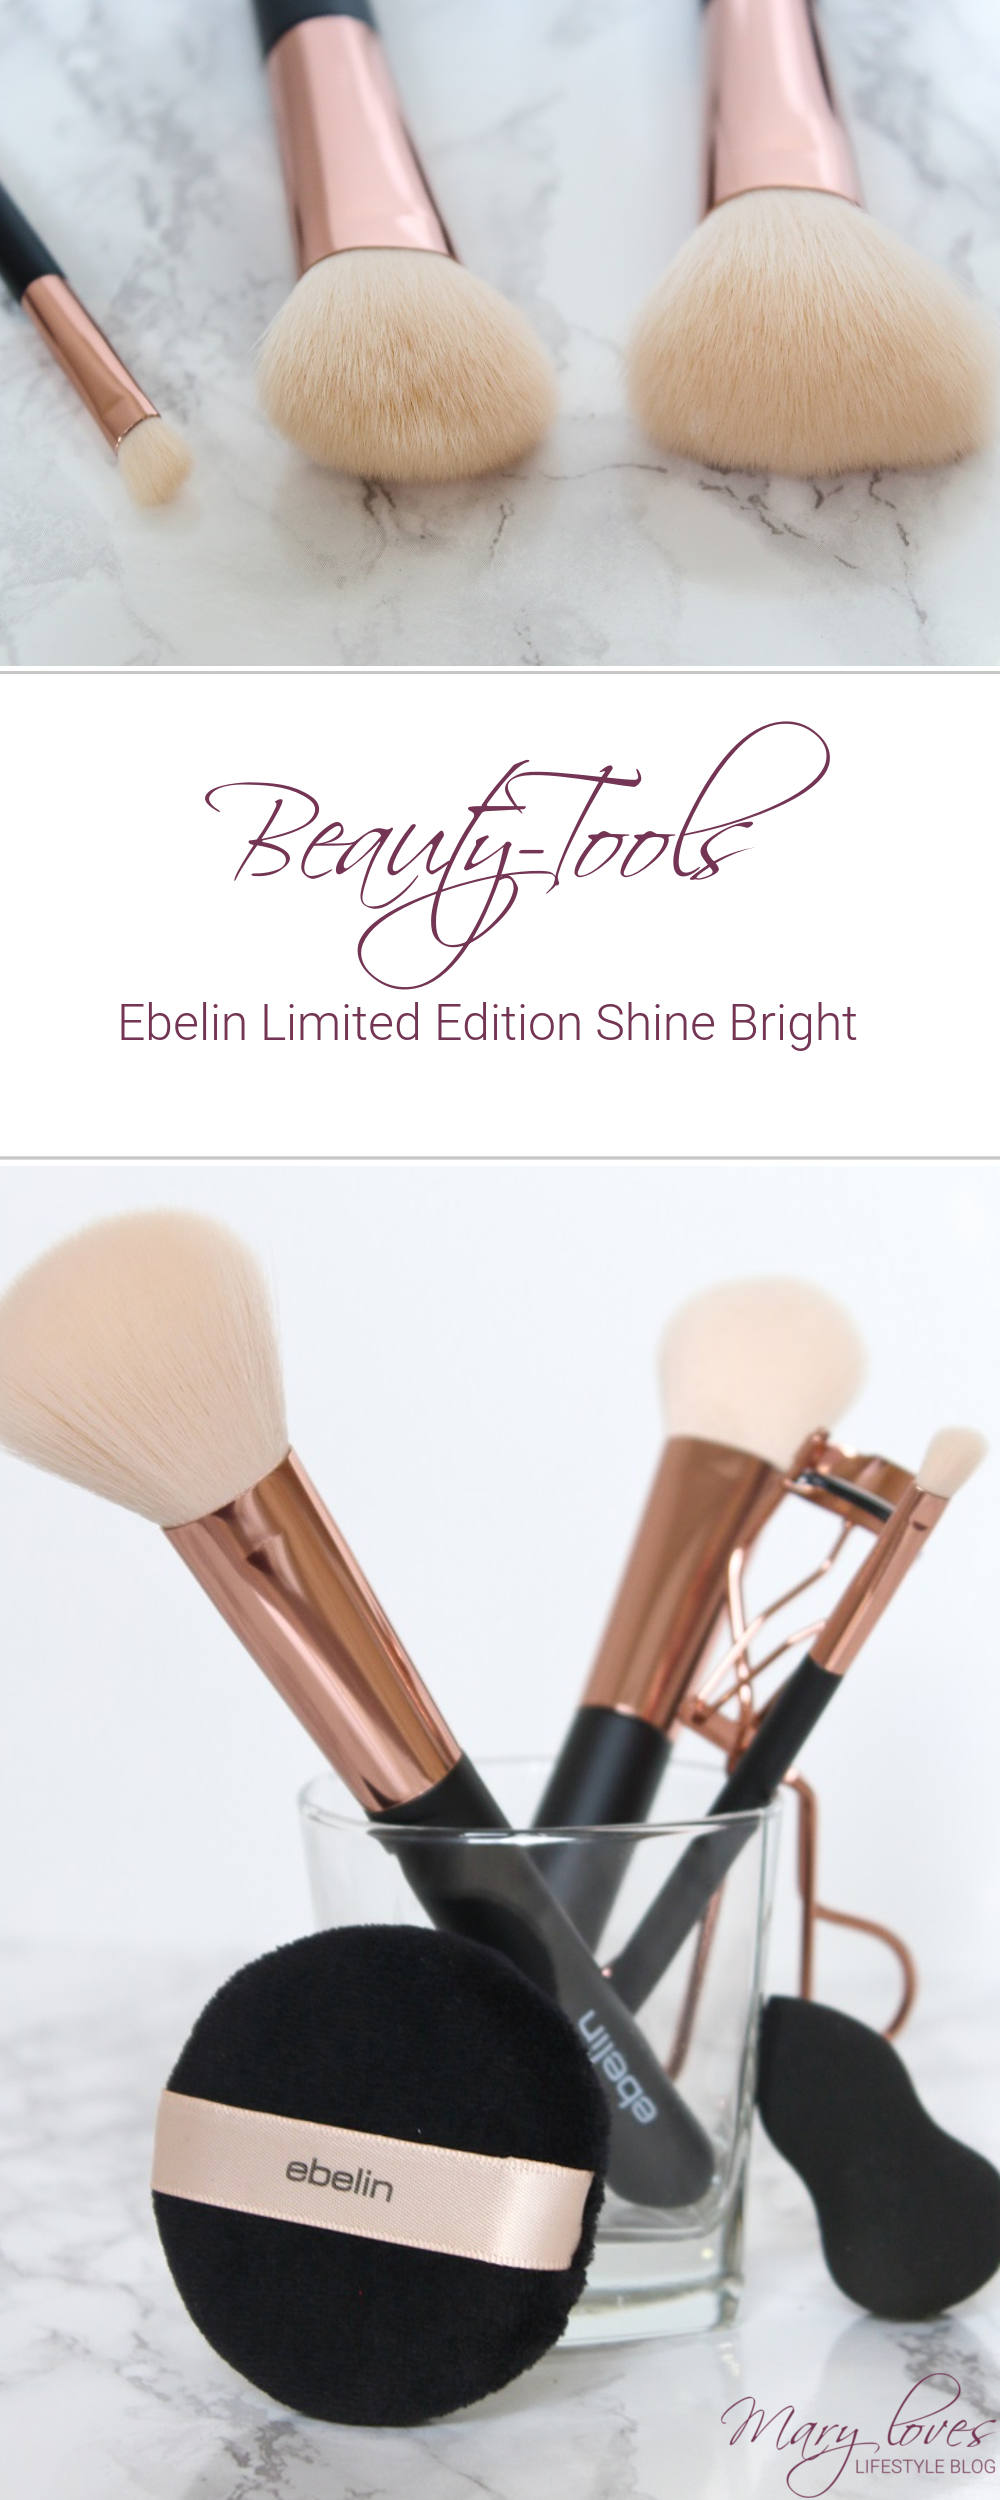 Beauty-Tools - Ebelin Limited Edition Shine Bright